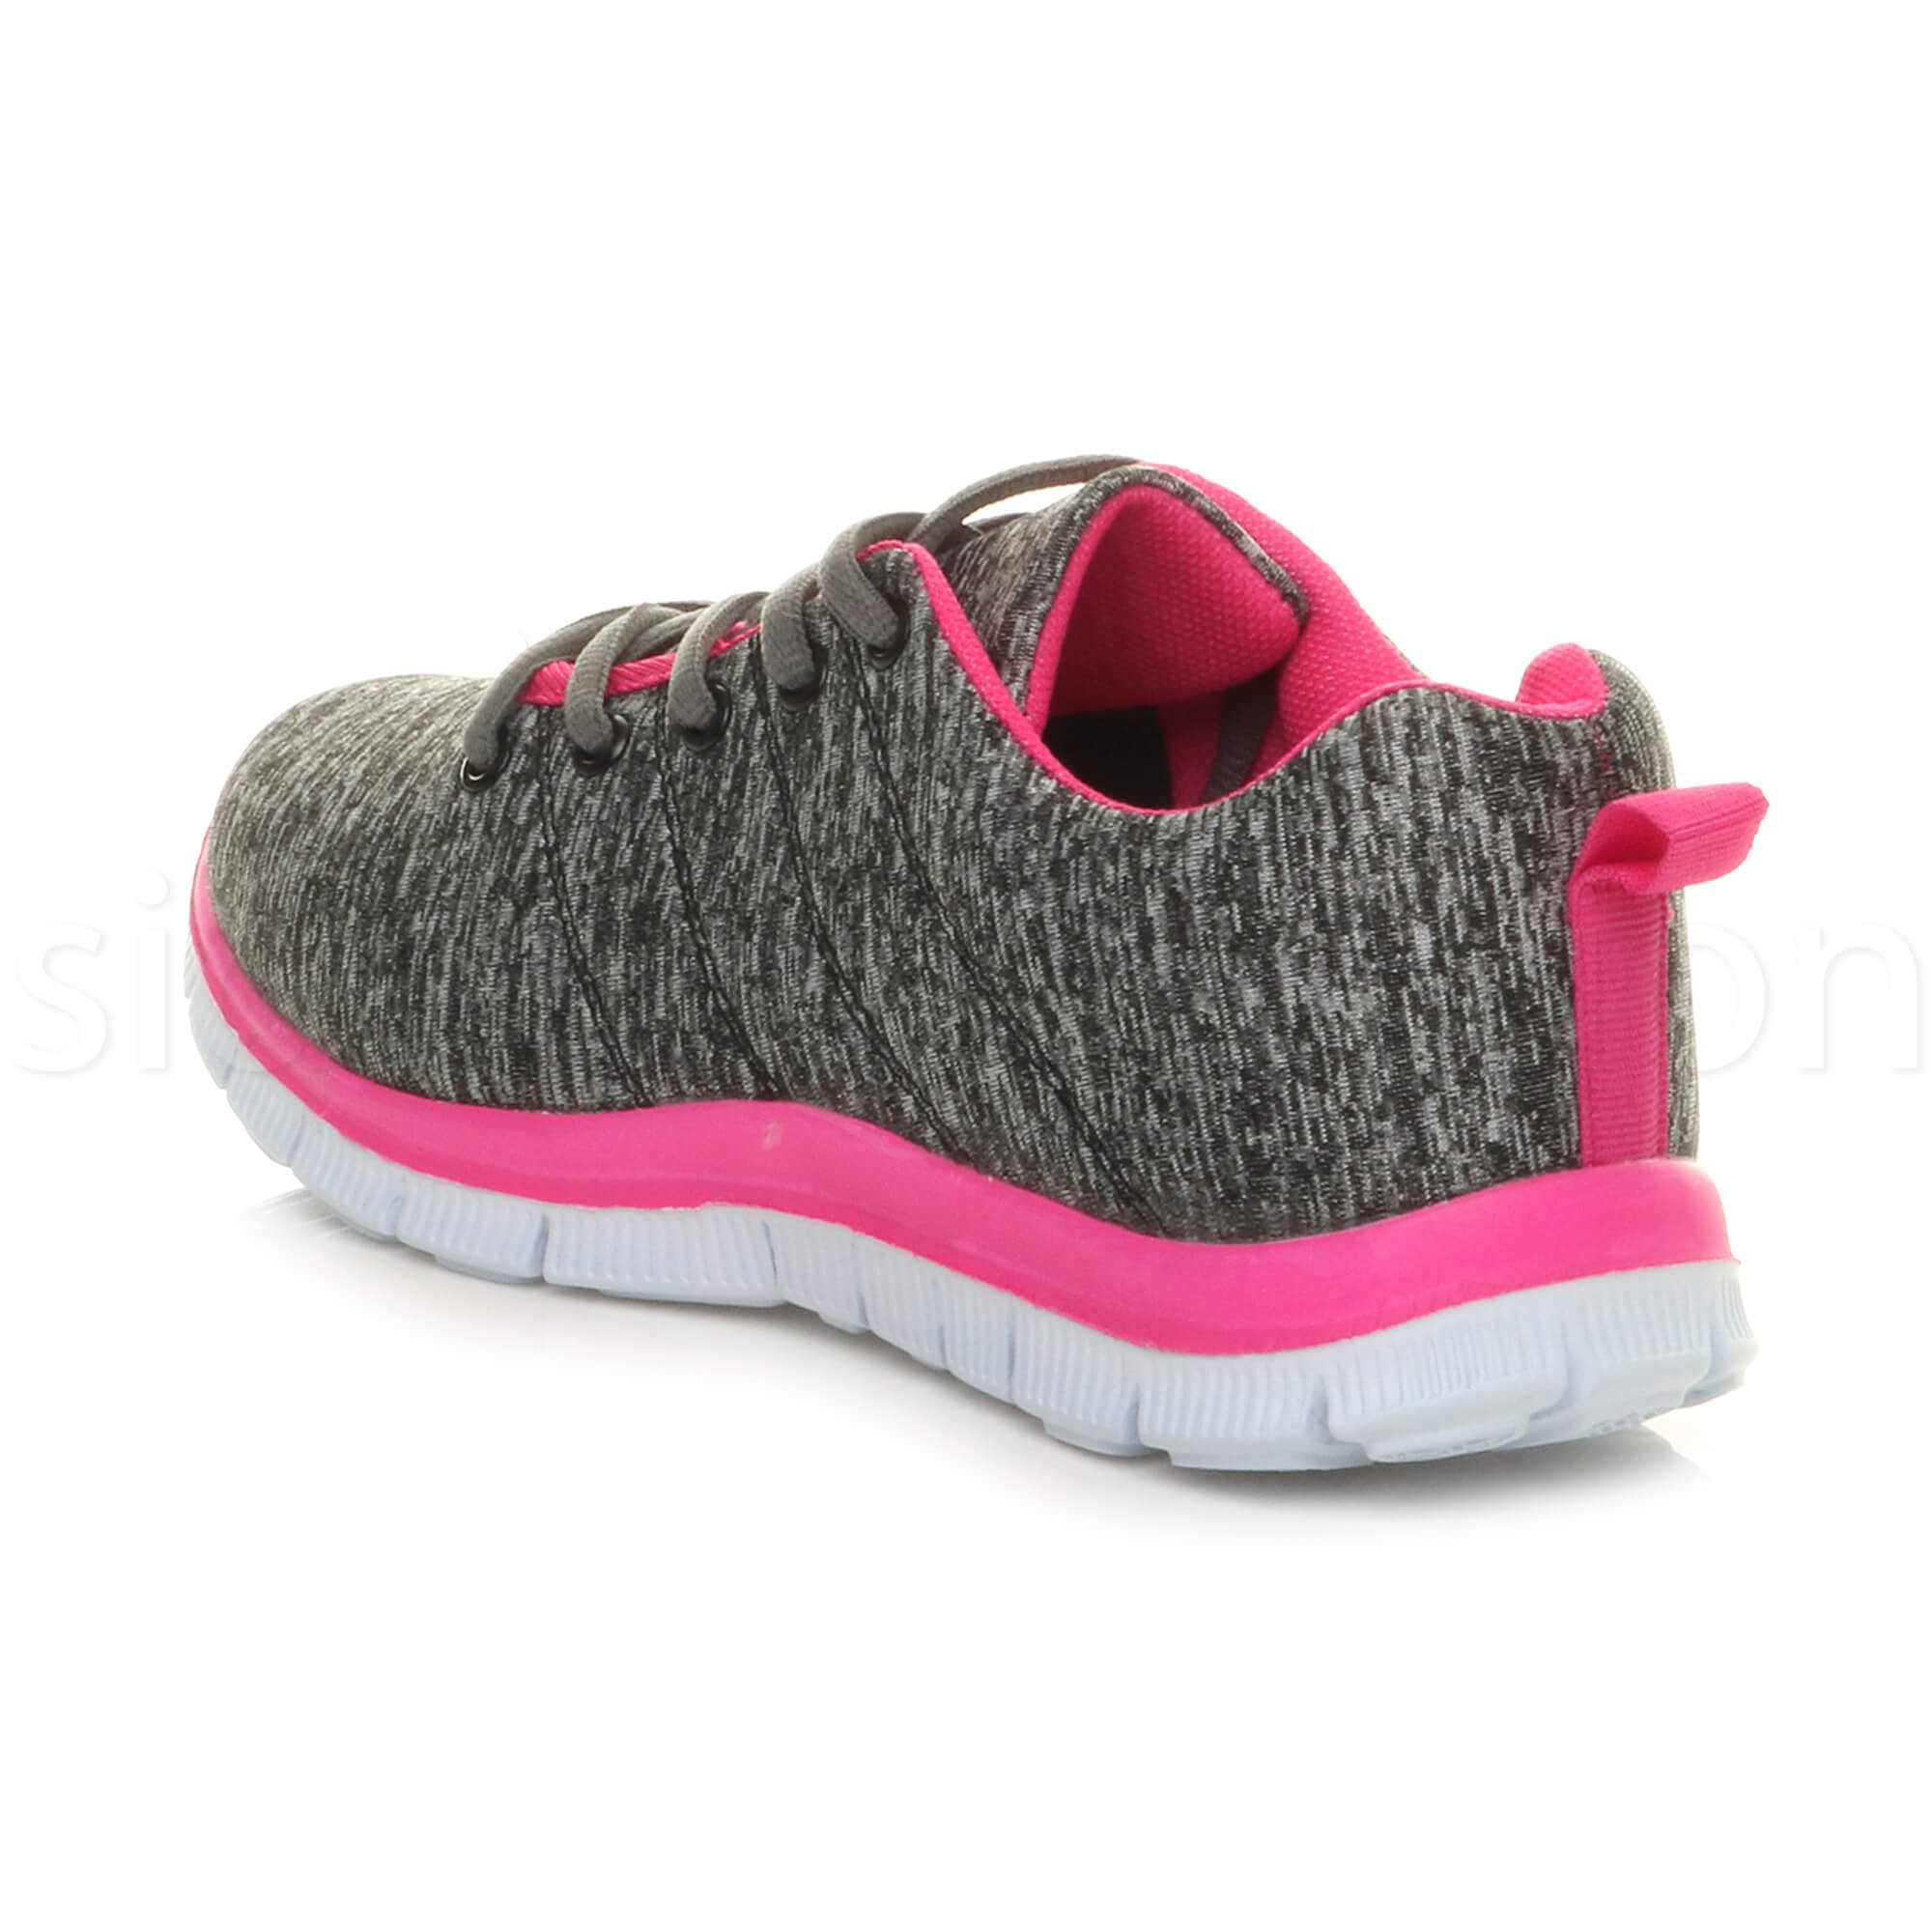 Womens-ladies-comfort-memory-foam-lace-up-trainers-activewear-sneakers-gym-shoes thumbnail 59